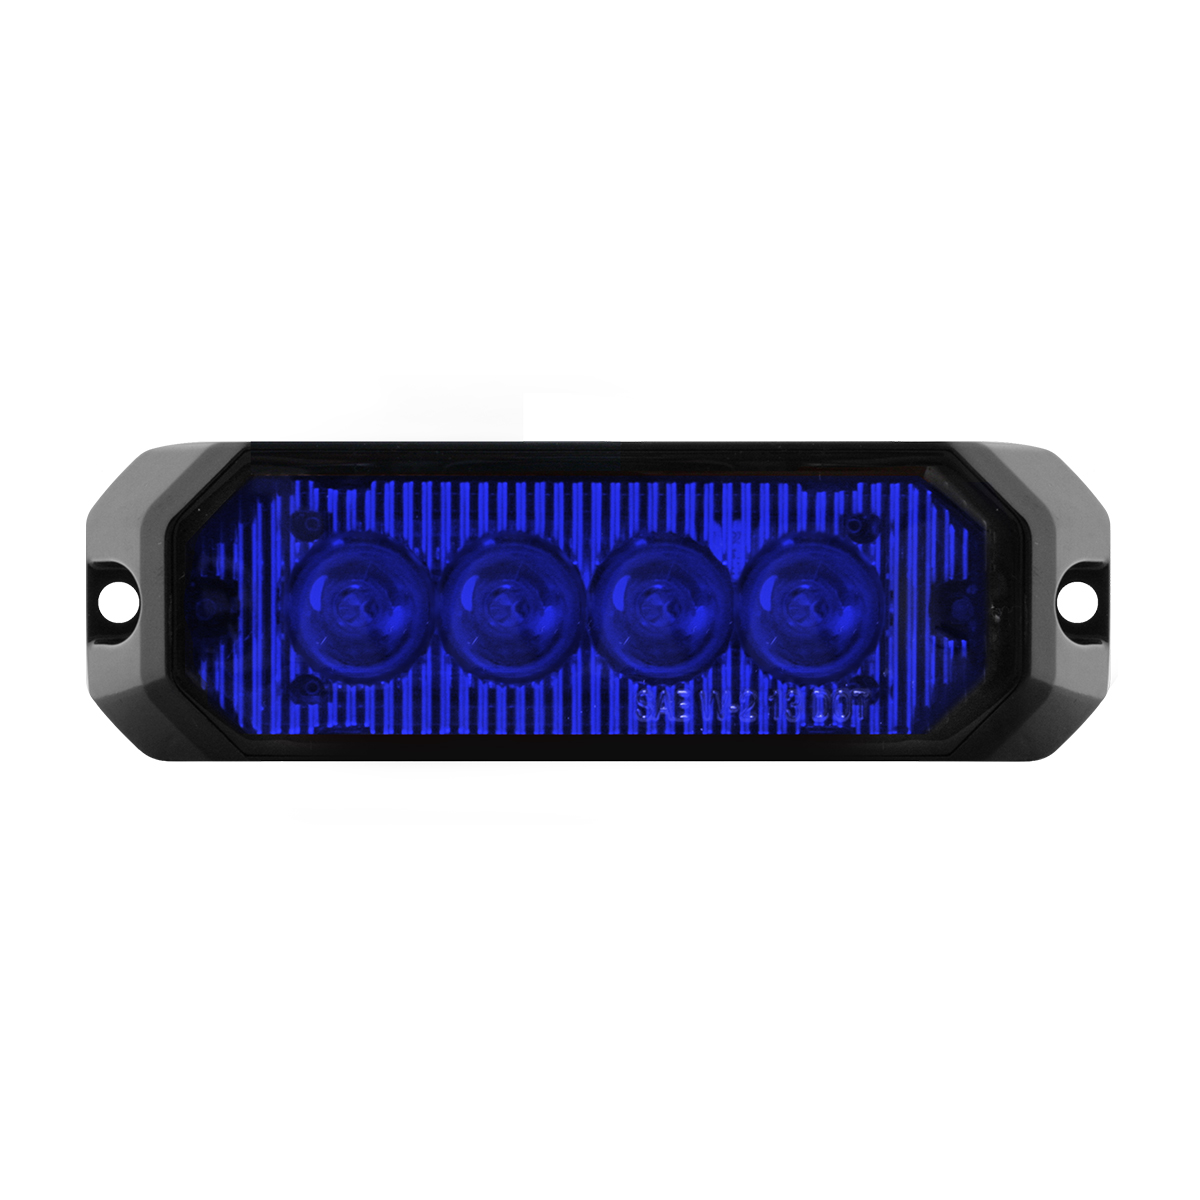 "81805 4"" Medium Rectangular High Power LED Strobe Light"